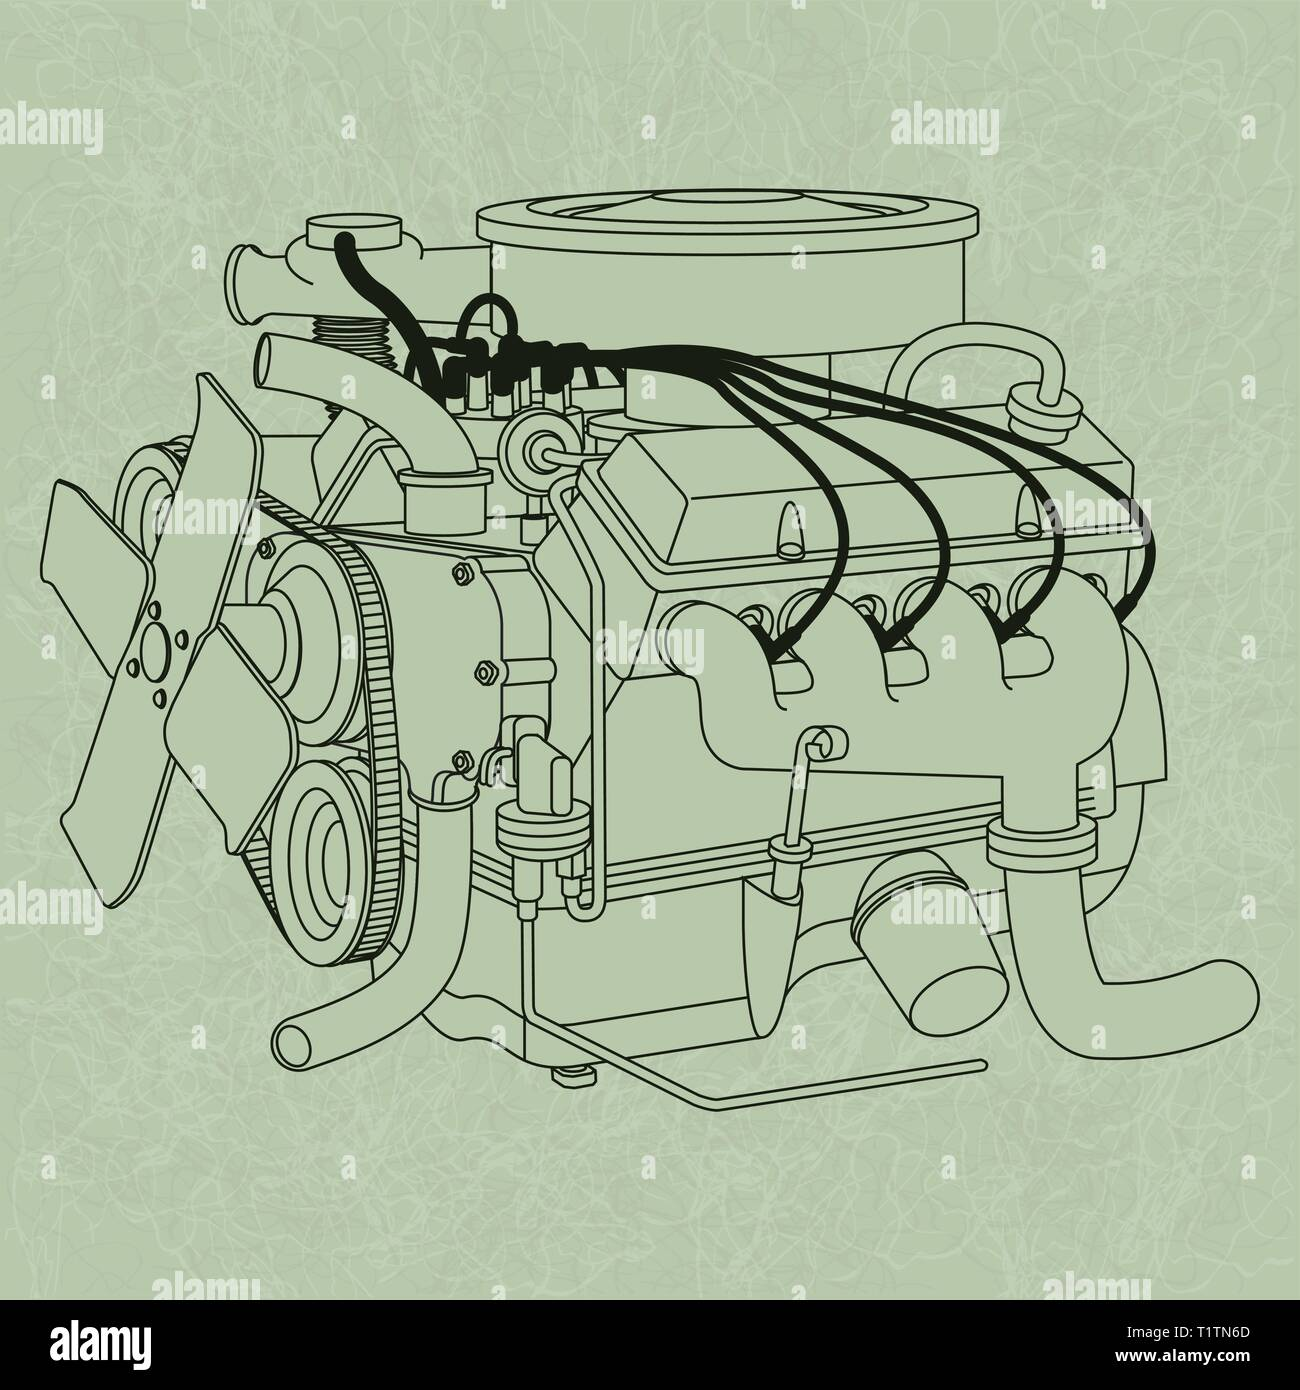 Car Engine Diagram And Explanation.Car Engine Diagram Stock Photos Car Engine Diagram Stock